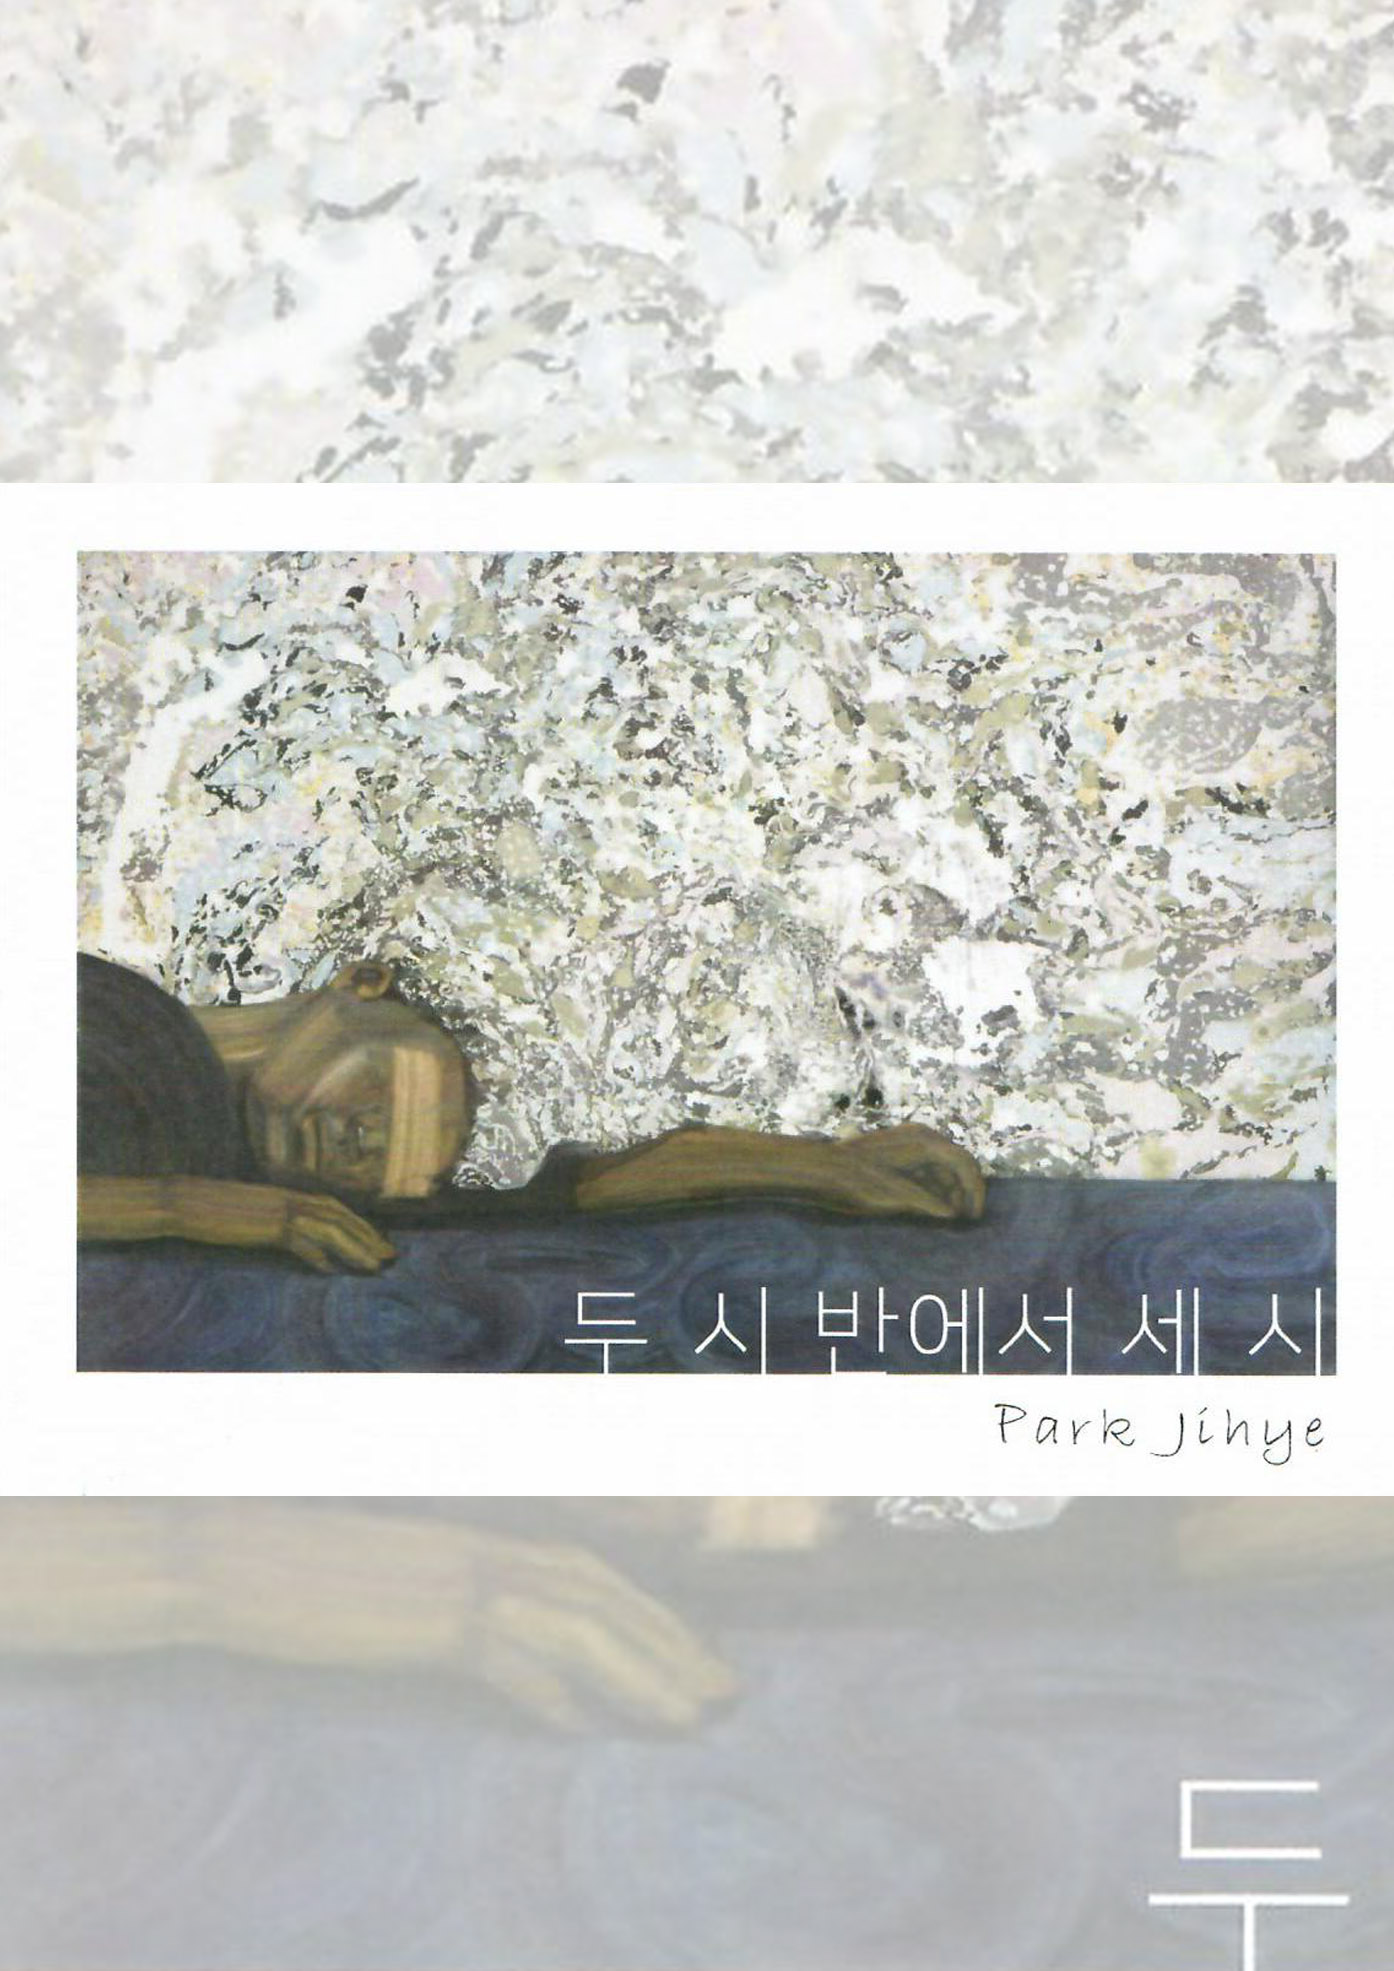 Painting Park Jihye Solo Exhibition [ 2:30PM - 3:00PM ]  첨부 이미지